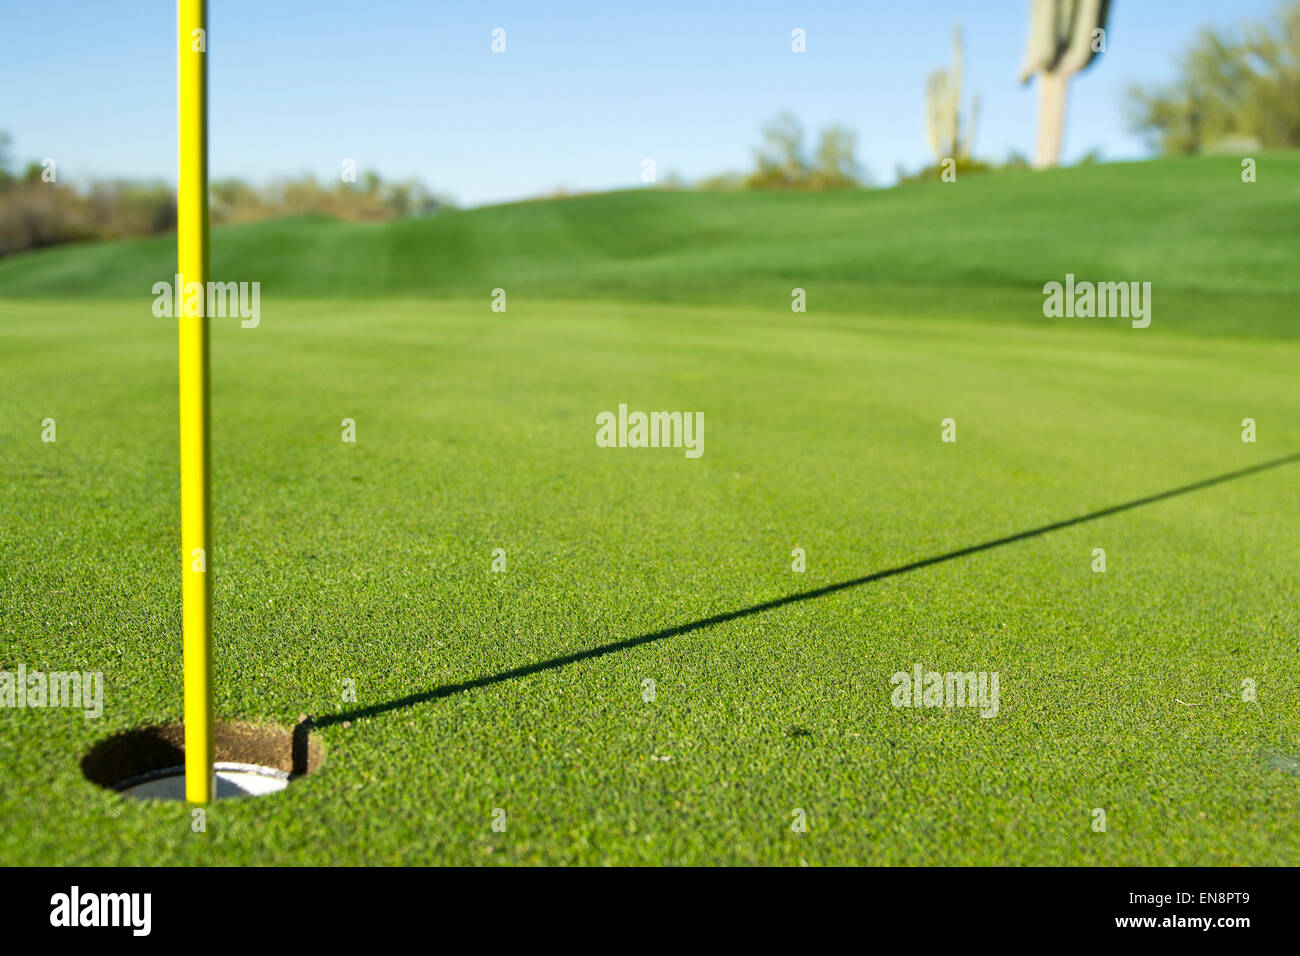 Close up of a golf hole on the fairway of a southwestern desert - Stock Image